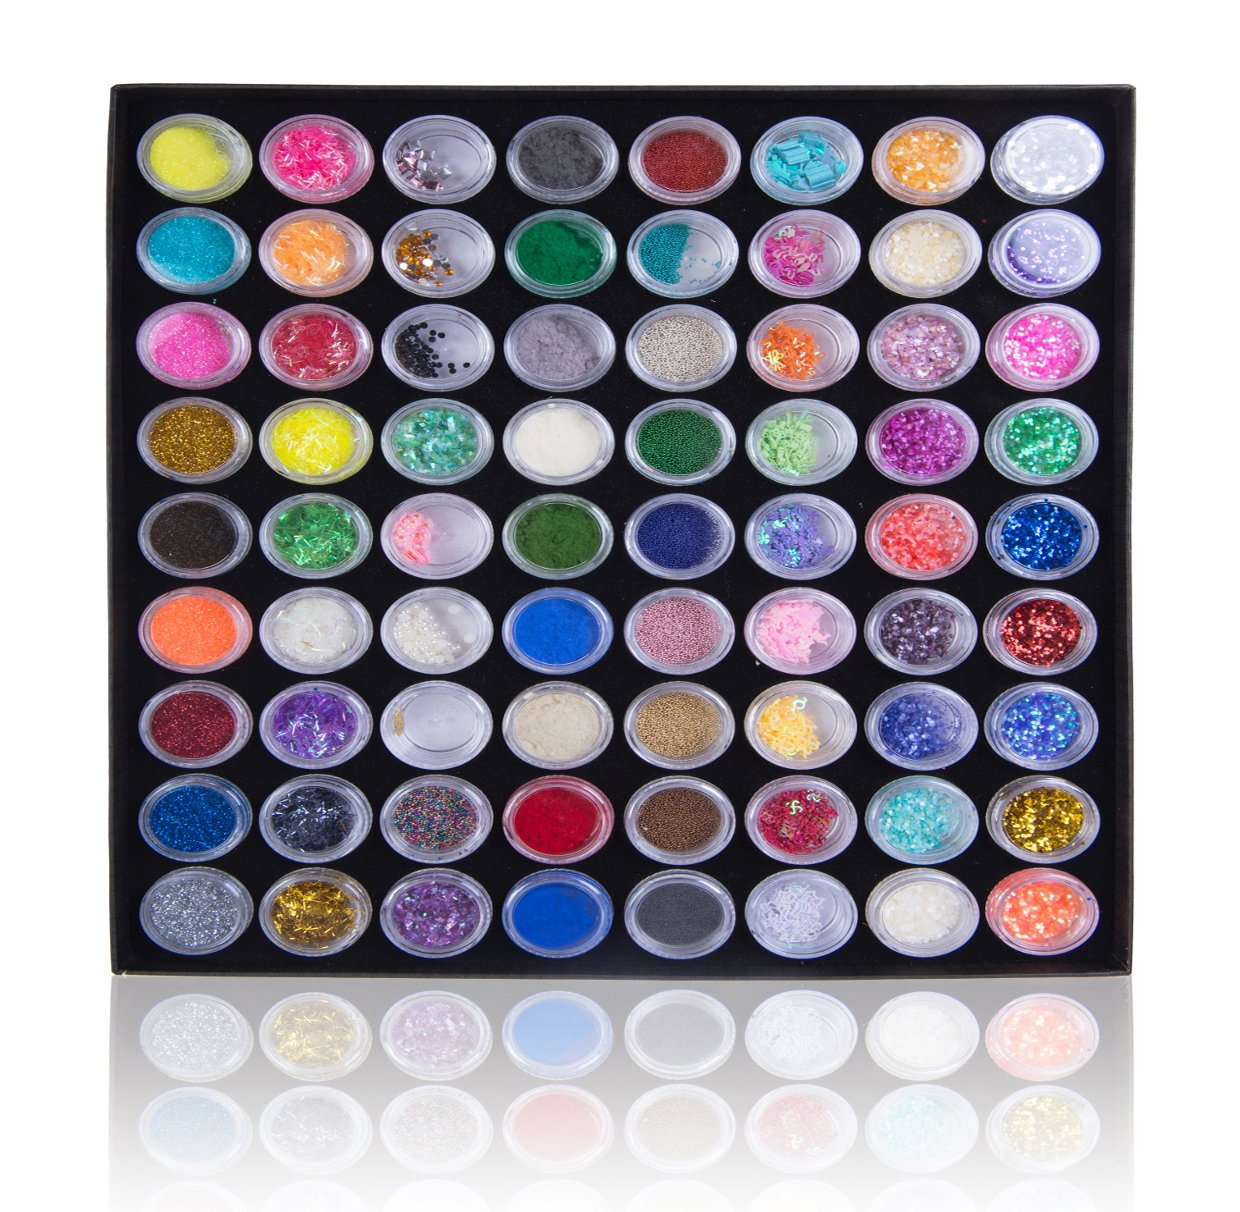 Shany Premium Nail Art Decoration-3d Nail Art Accessories Kit-72pc Mix Set With Storage Box ETRAVIS Inc CA SH-NAILPOWDER-SET02